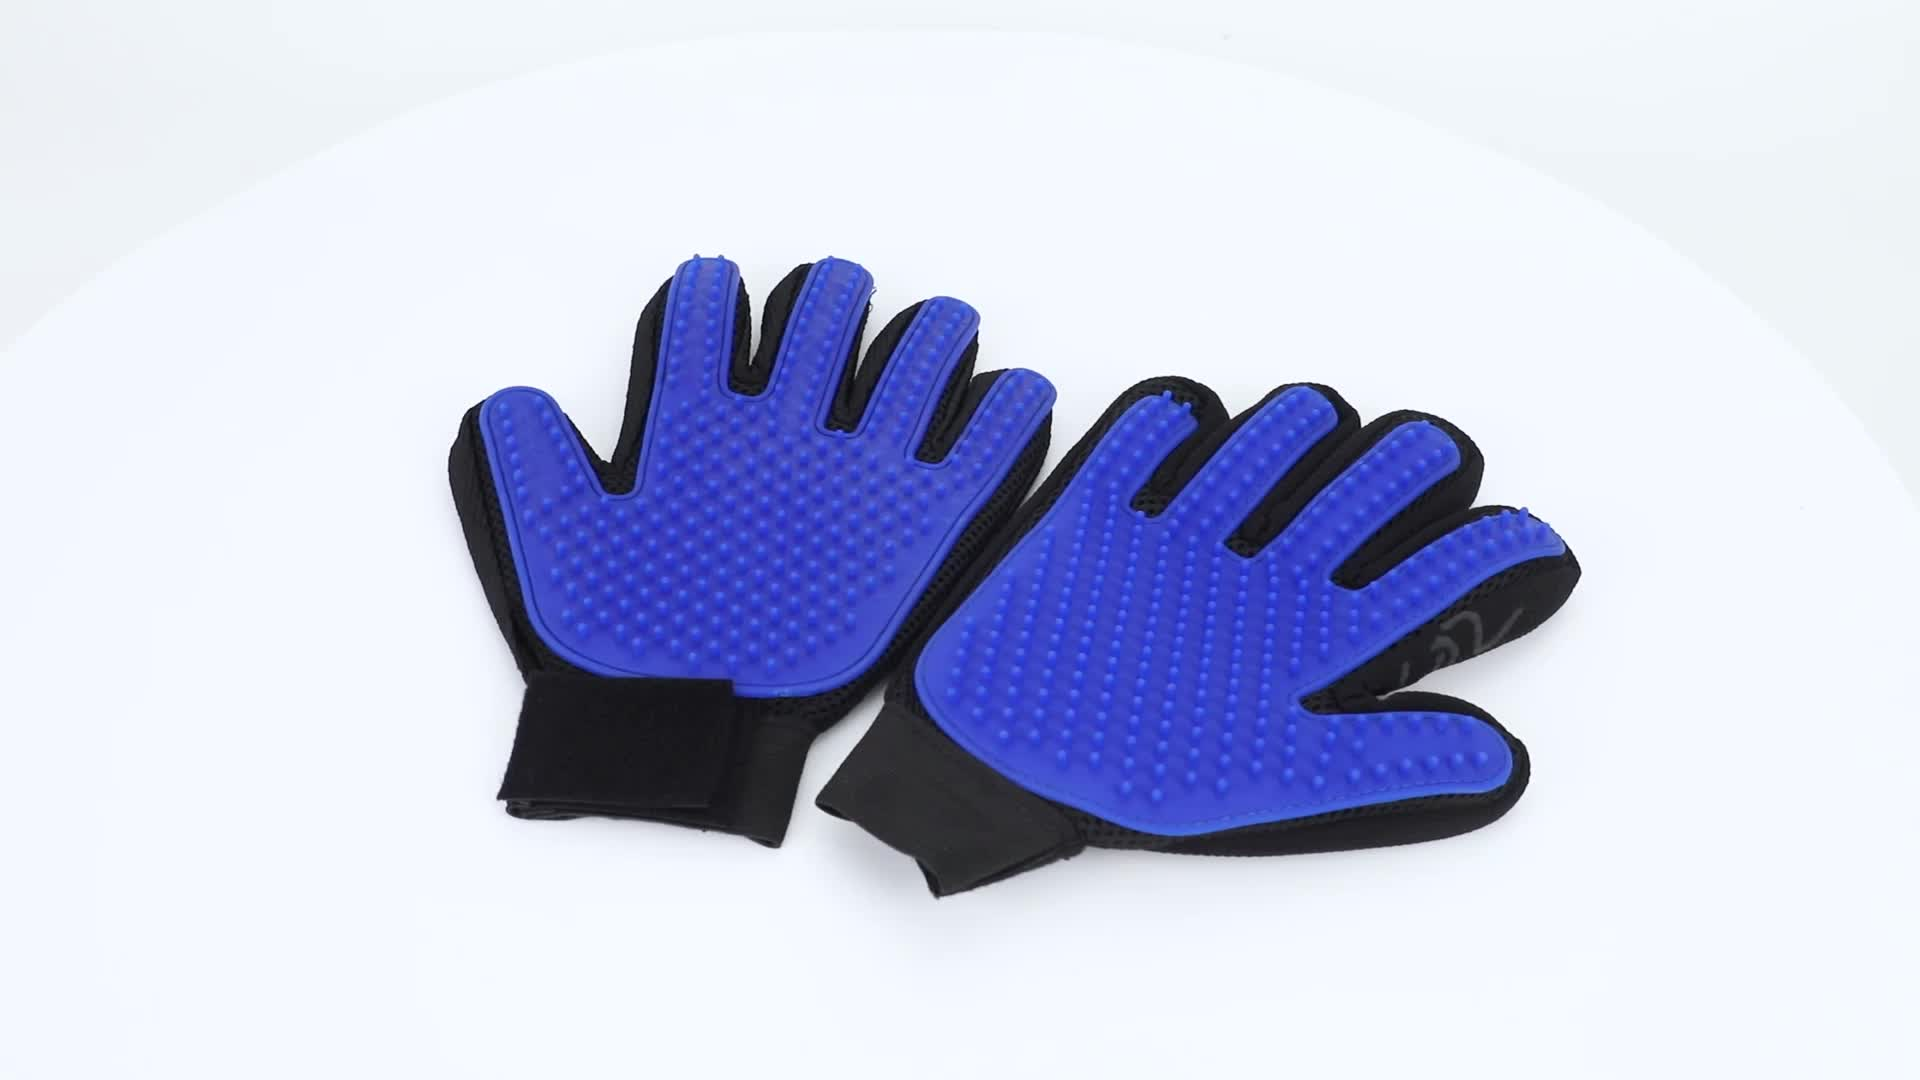 Pet Supplies Silicon Soft Luvas Pet Hair Remover Gloves mascota Pet Grooming Glove Deshedding Brush Glove with 260 Grooming Tips